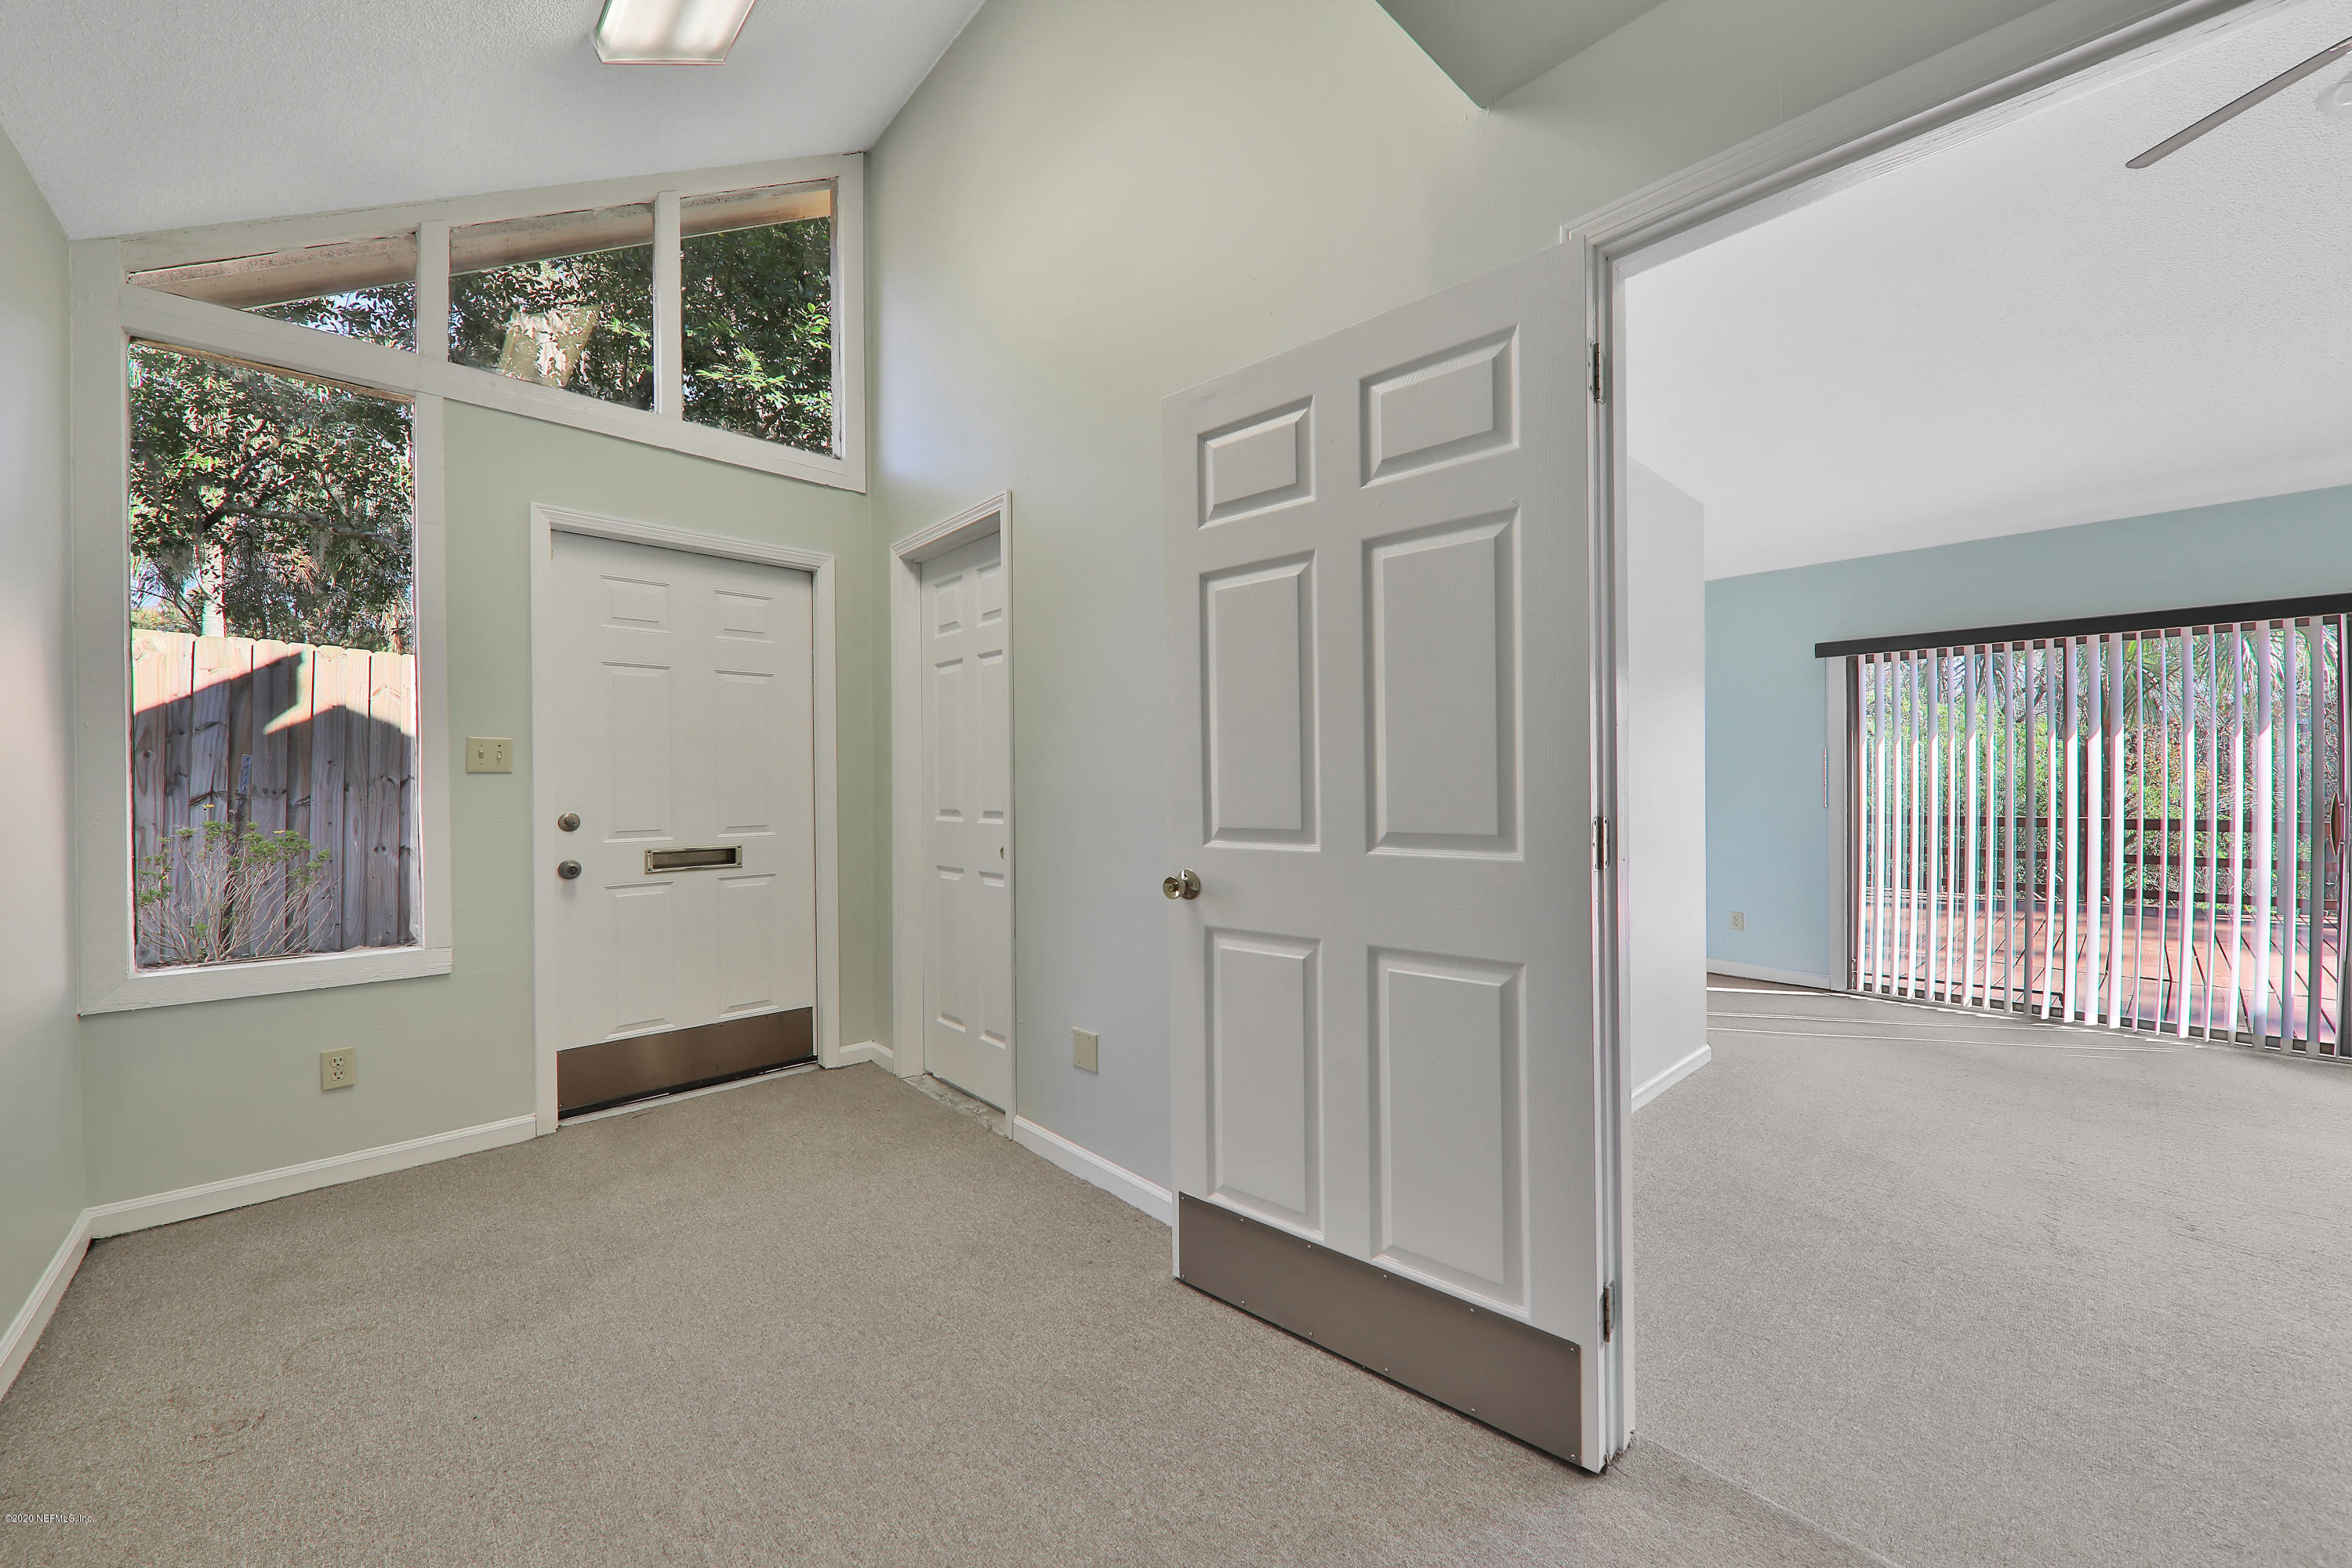 Image 15 of 35 For 4043 Baymeadows Rd